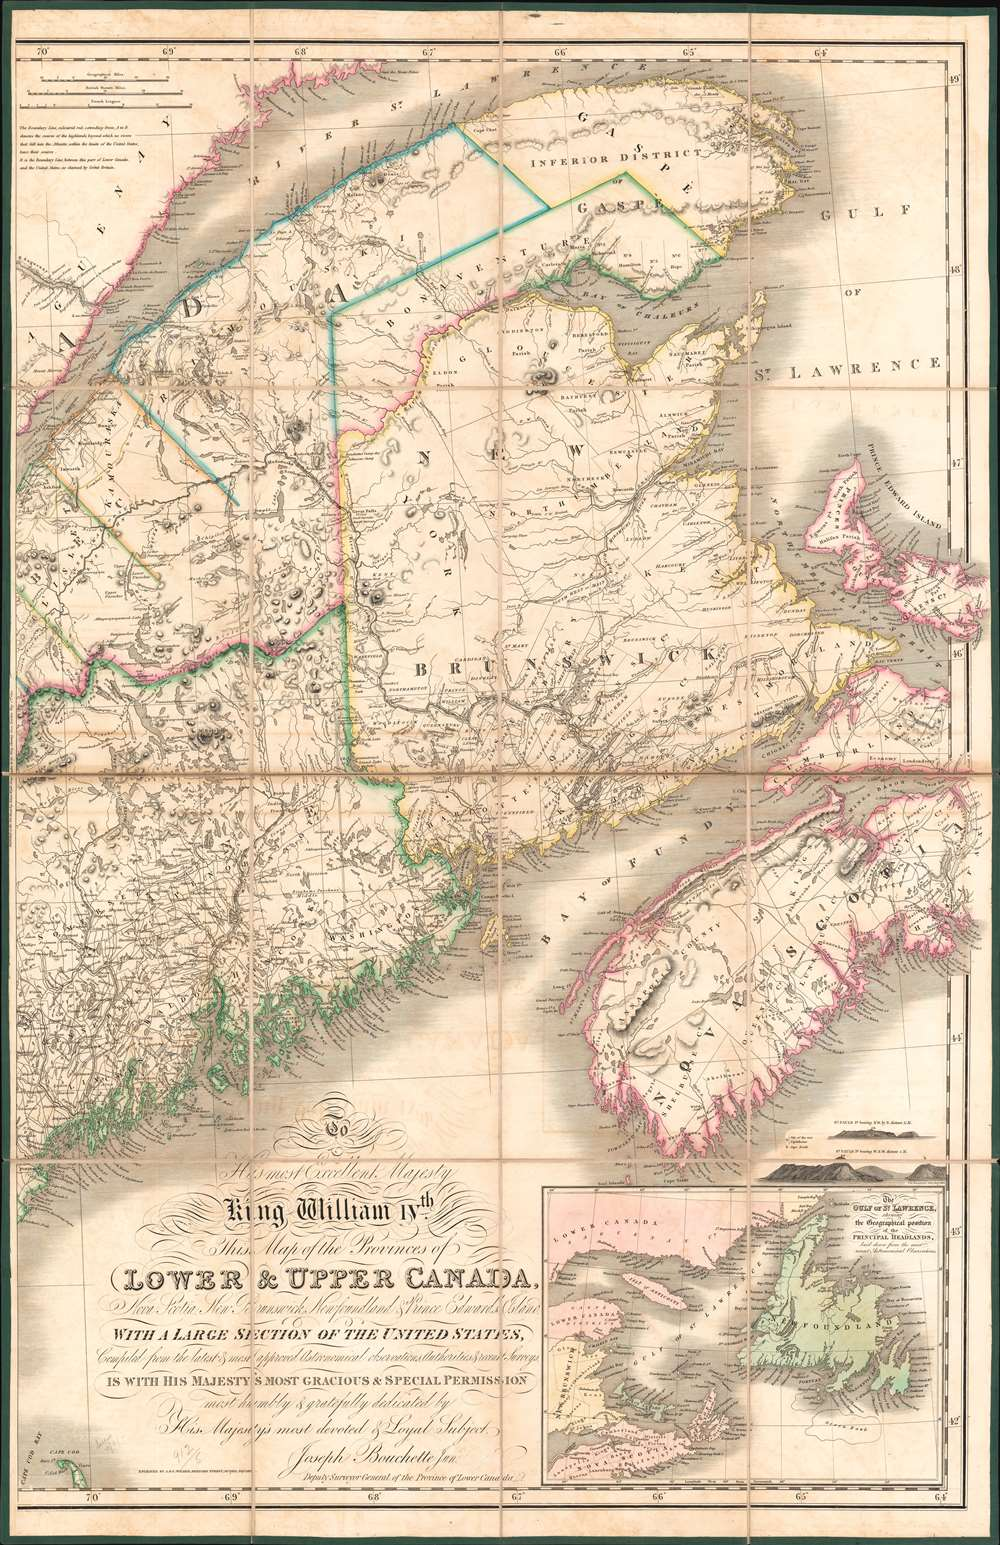 To His Most Excellent Majesty King William IVth This Map of the Provinces of Lower and Upper Canada, Nova Scotia, New Brunswick, Newfoundland and Prince Edwards Island, with a Large Section of the United States... - Alternate View 2